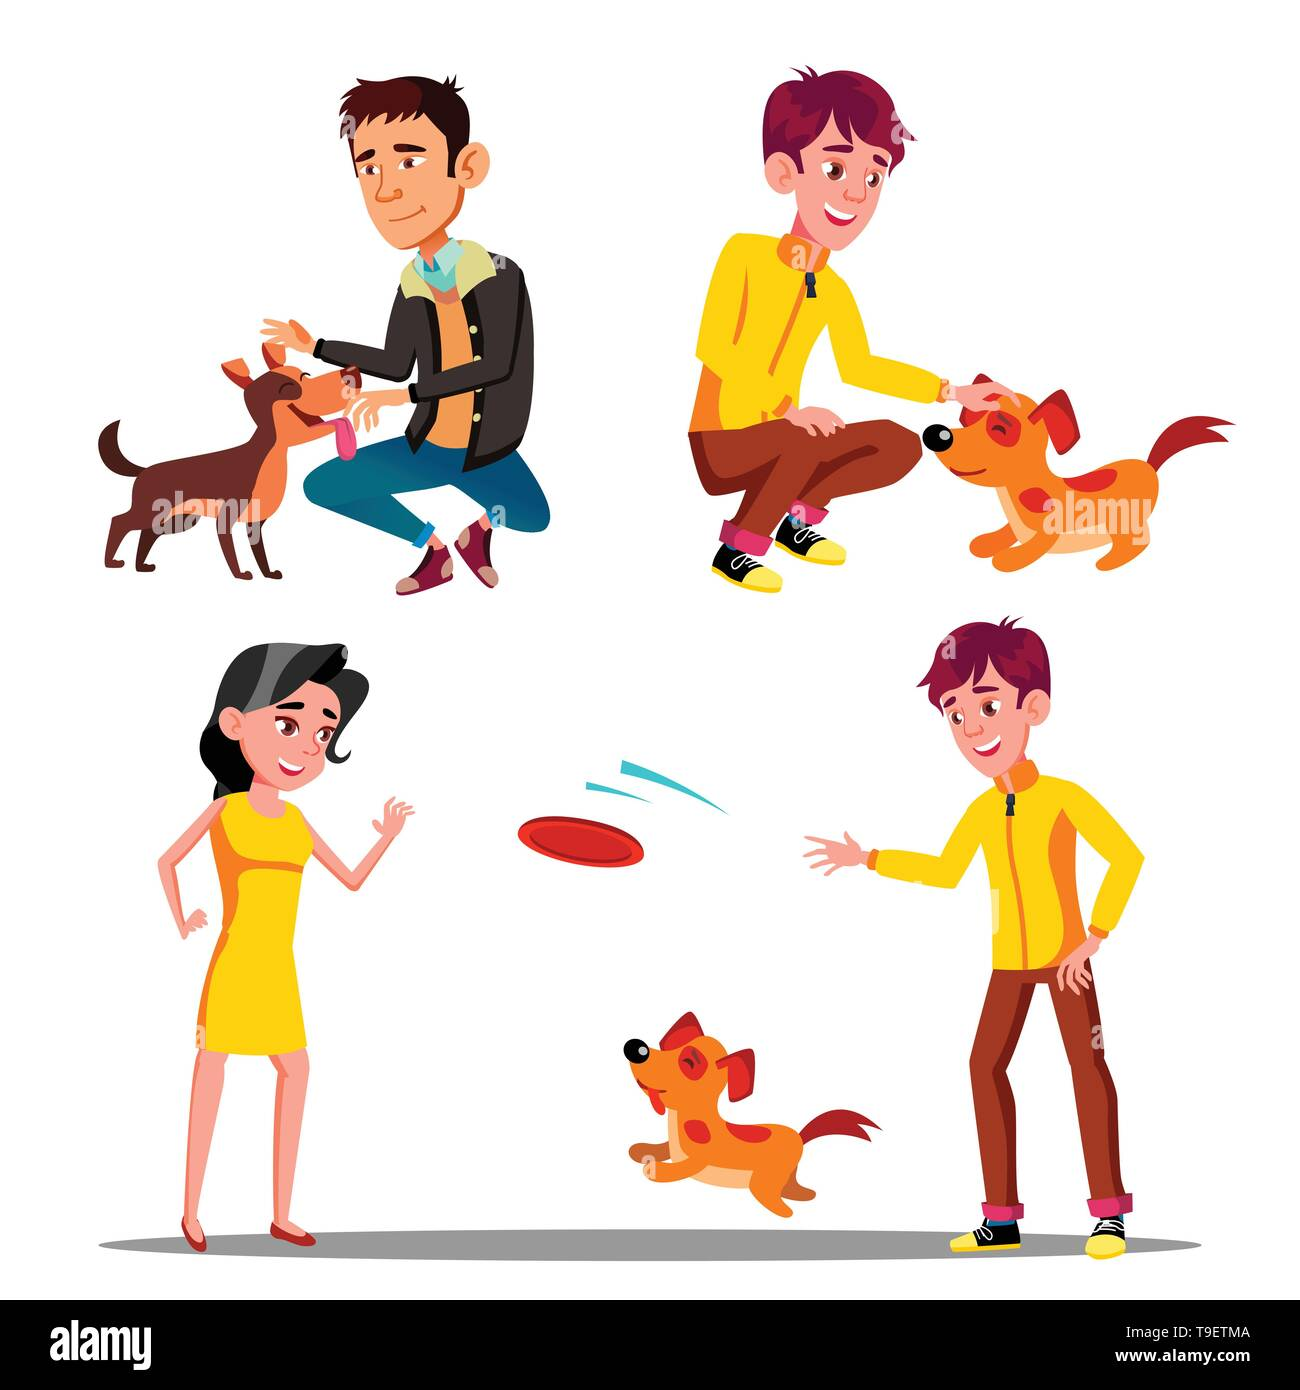 Characters Walking With Domestic Animal Set Vector. Man And Woman Walking, Petting And Playing Frisbee With Happy Running And Jumping Pet Dog. Outdoor - Stock Image